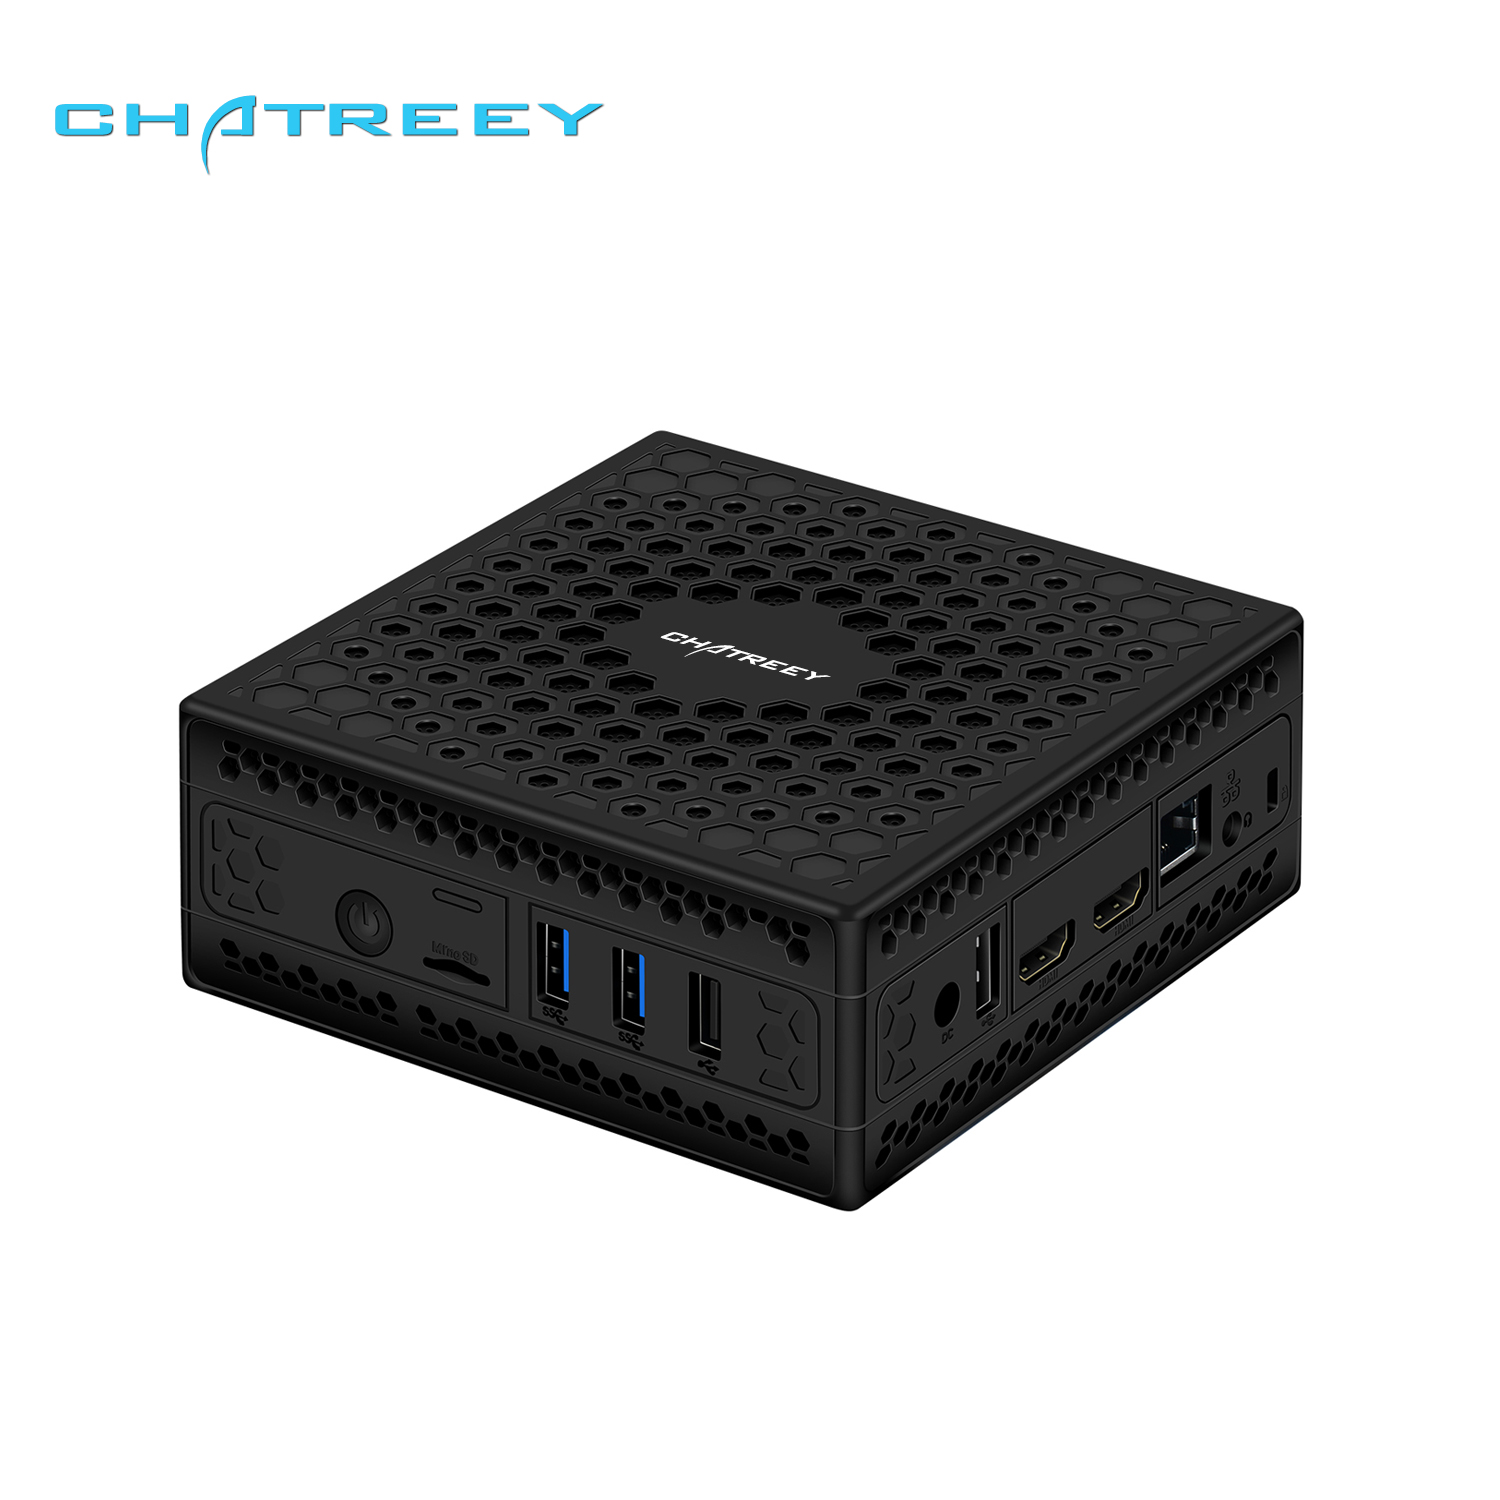 Chatreey AC1-Z Fanless mini pc embedded Intel celeron j3455 j4105 quad core dual display HDMI windows 10 linux  HTPC computer